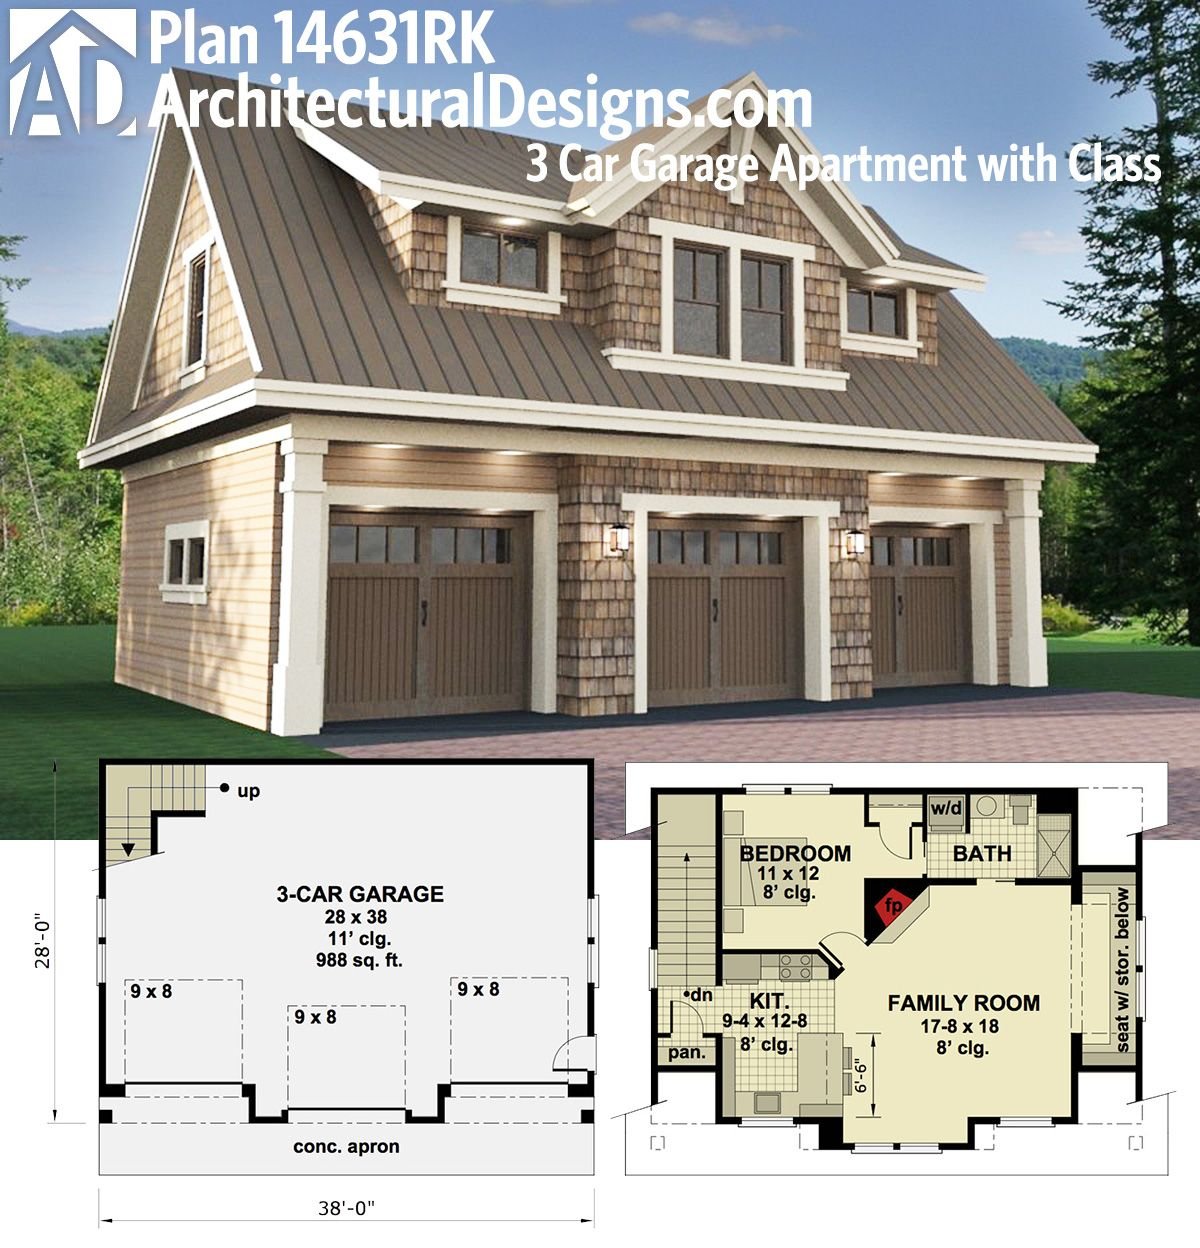 Plan 14631rk 3 car garage apartment with class carriage for Small home plans with garage